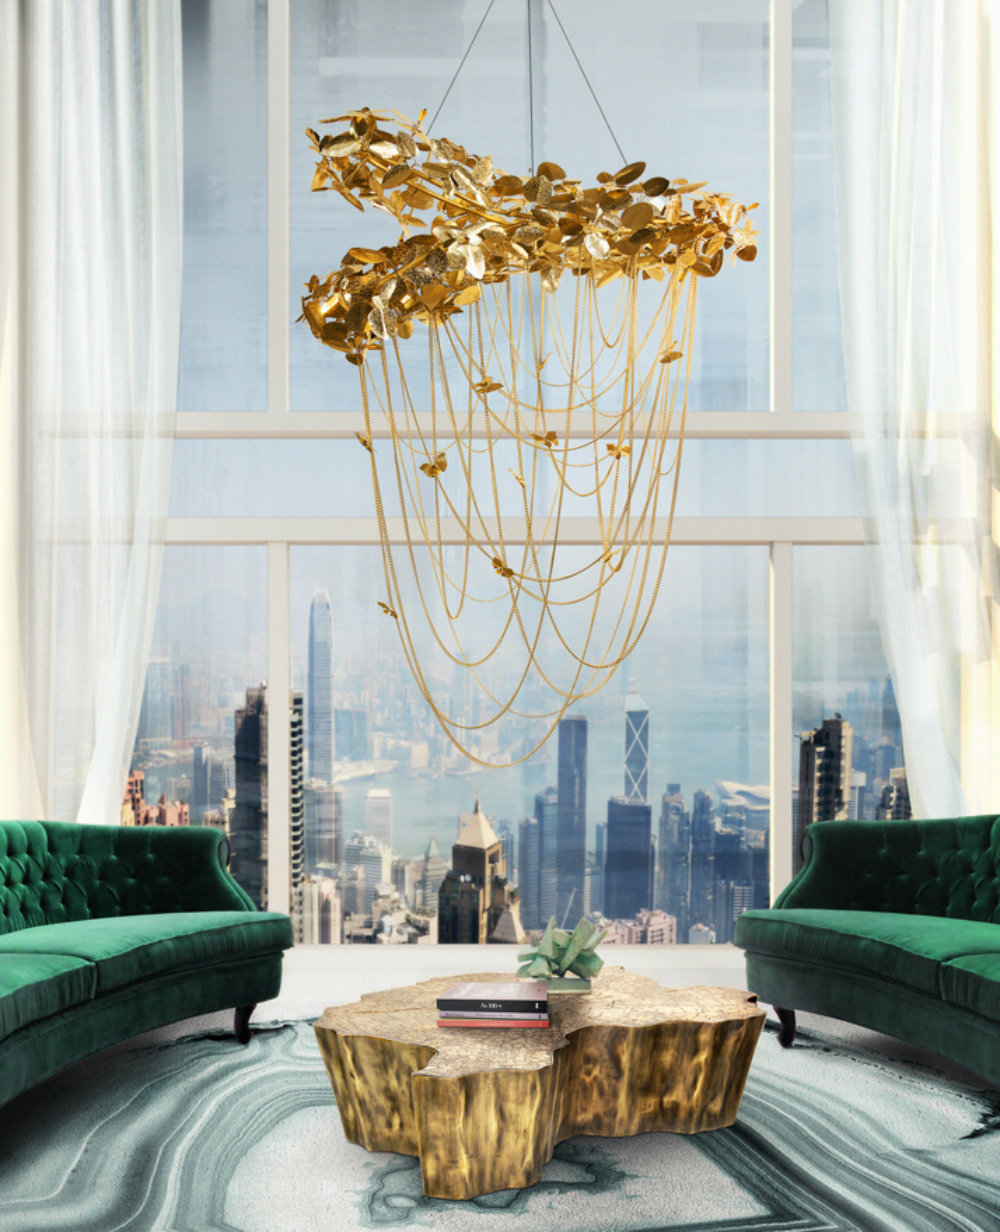 Trend Report: 5 Lighting Trends For 2019 – Modern Chandeliers